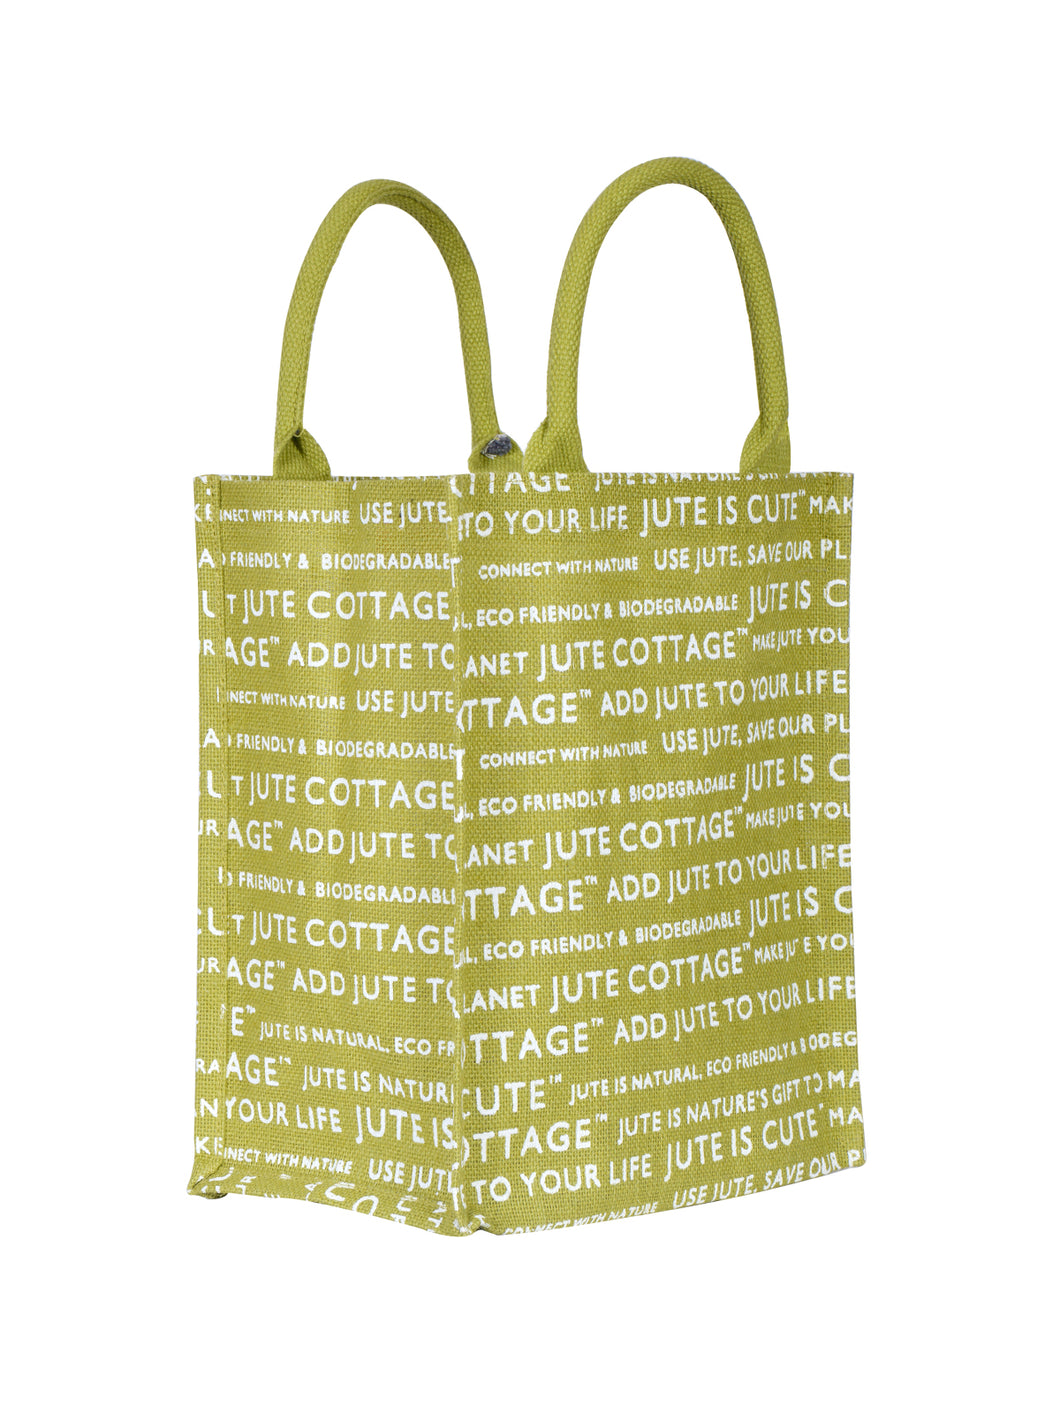 13 X 11 JUTE COTTAGE PRINTED (B-038-Olive Green)